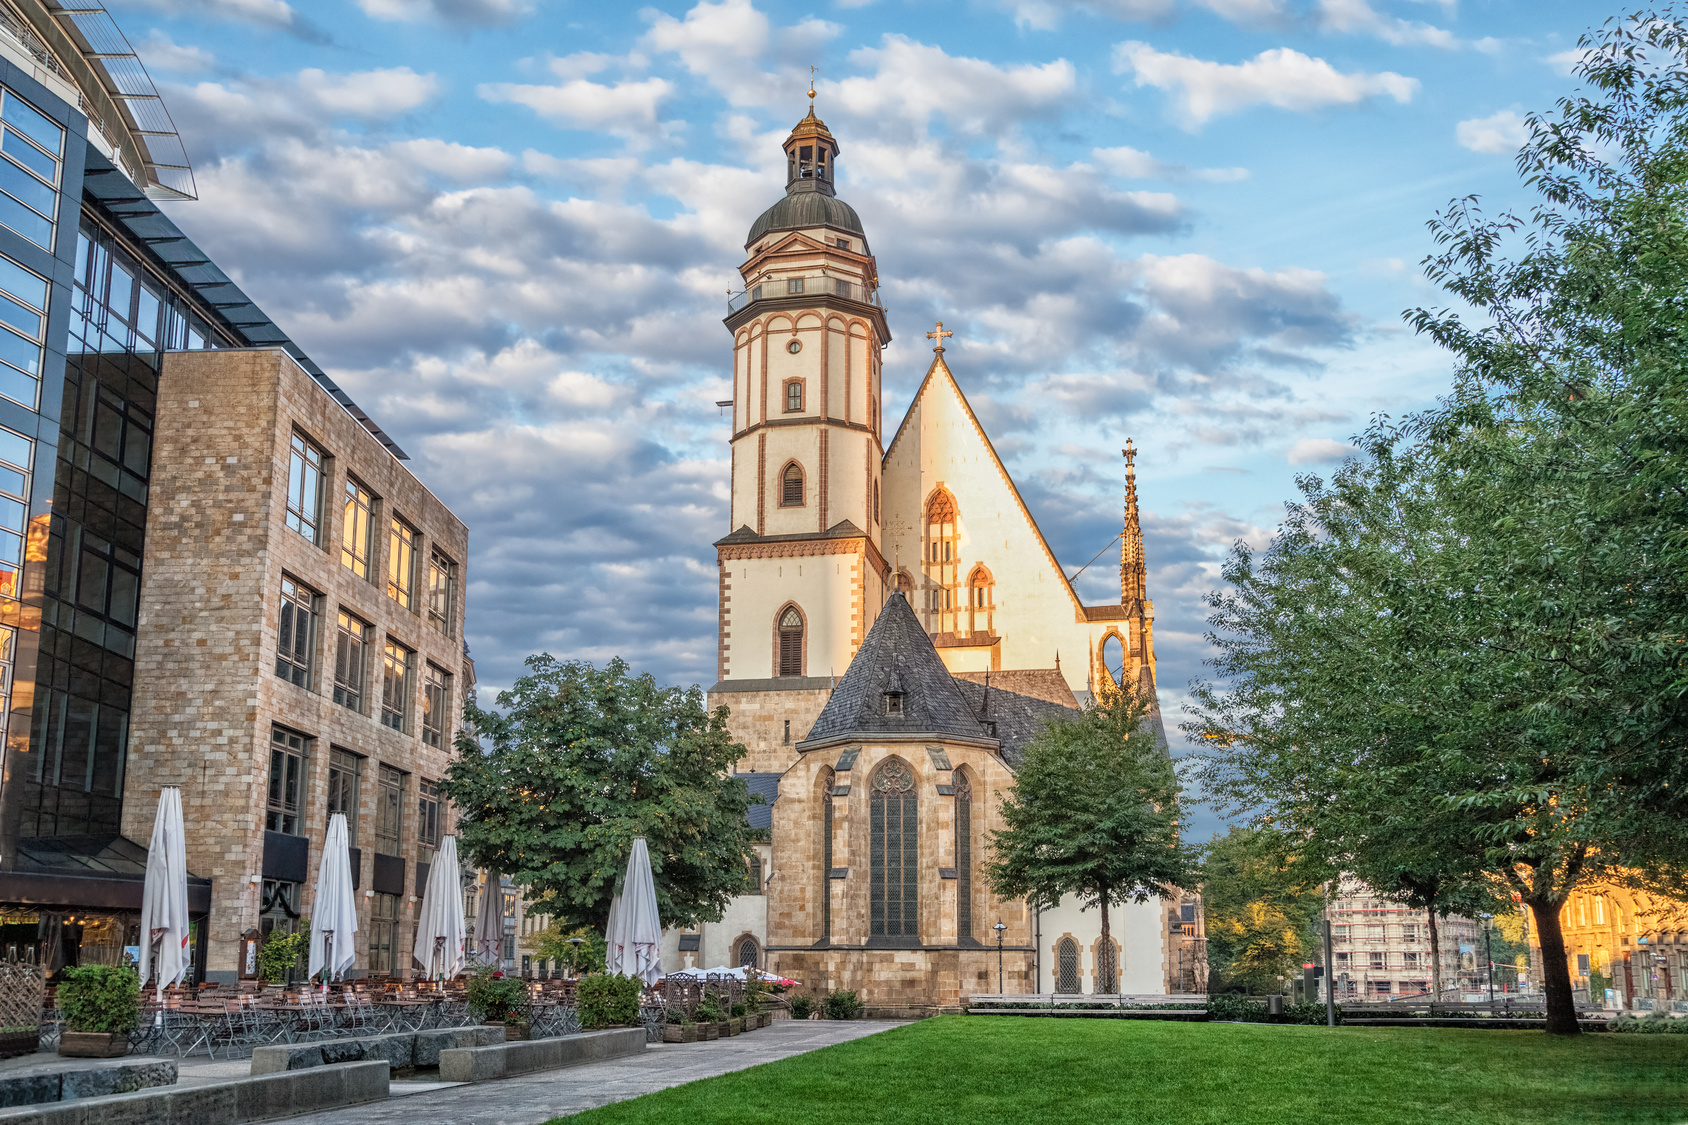 Christians: Here are 15 Travel Experiences in Europe to Enrich Your Faith